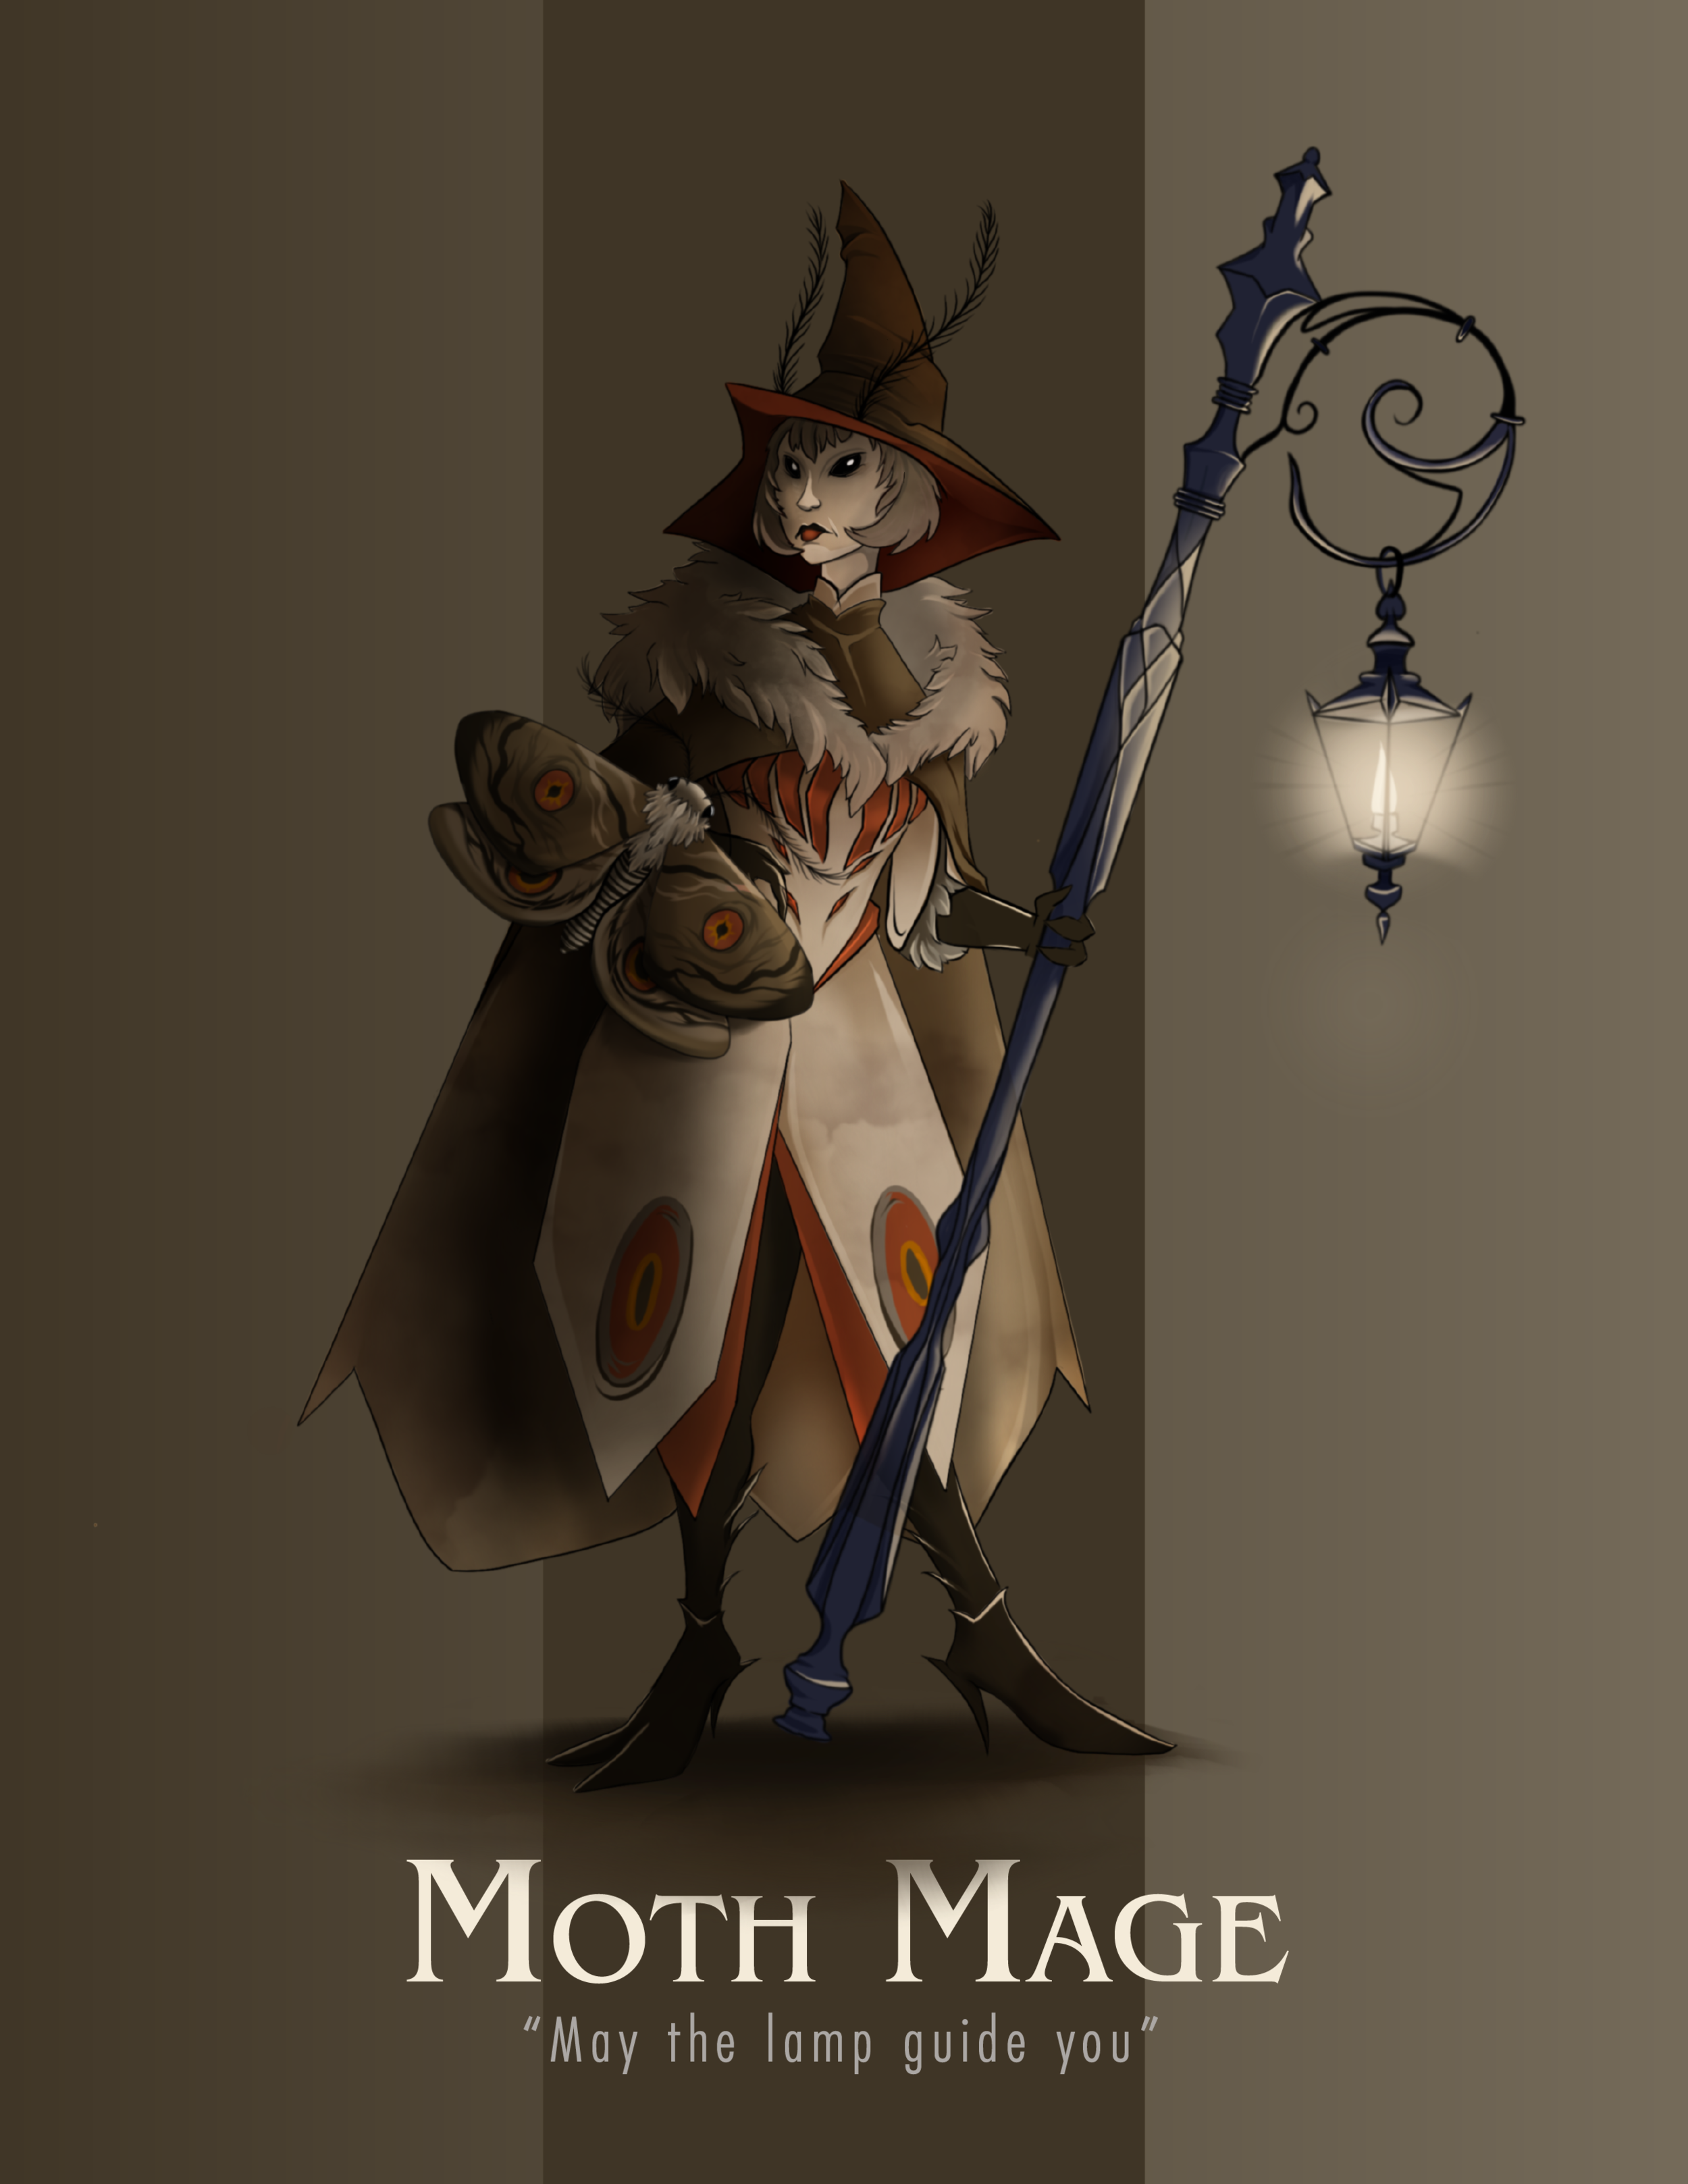 Moth_Mage,_Full_Body-01.png